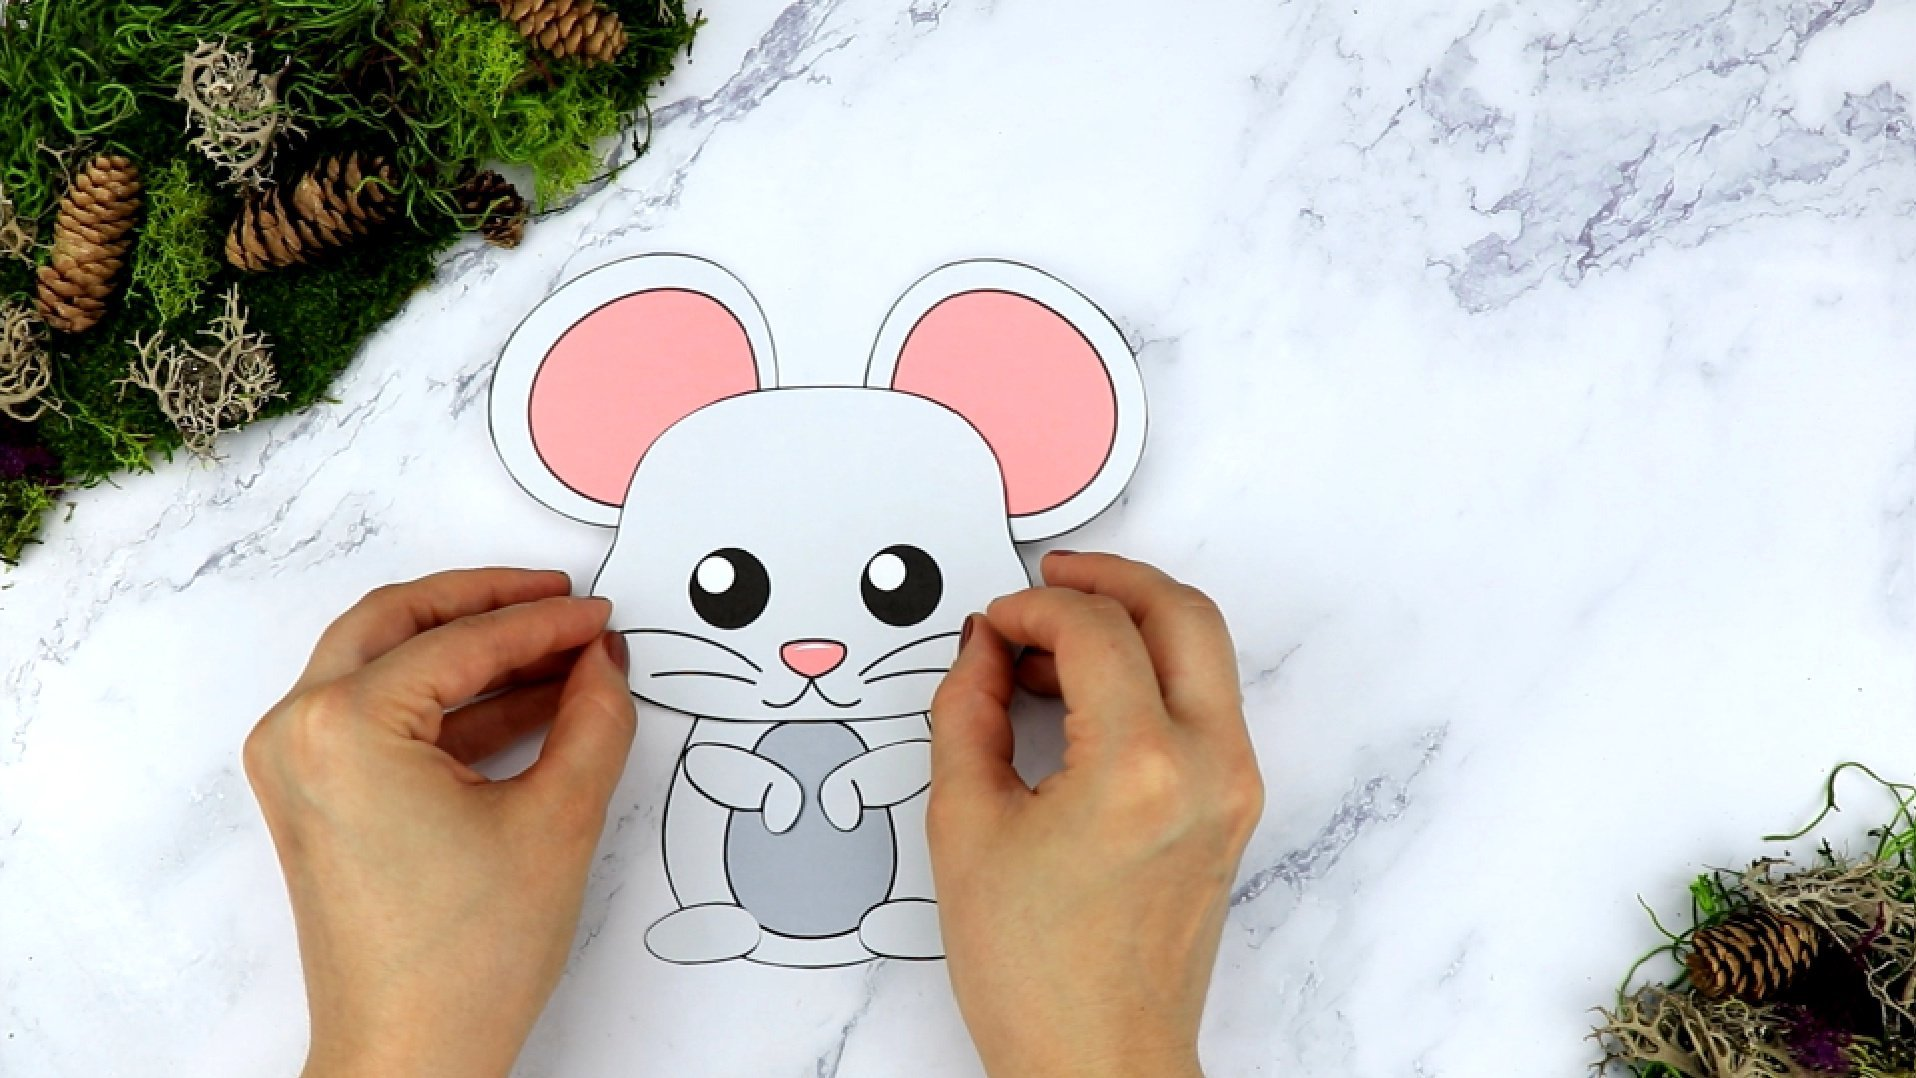 Free Printable Forest Mouse Craft Template for kids, preschoolers, toddlers and kindergartners